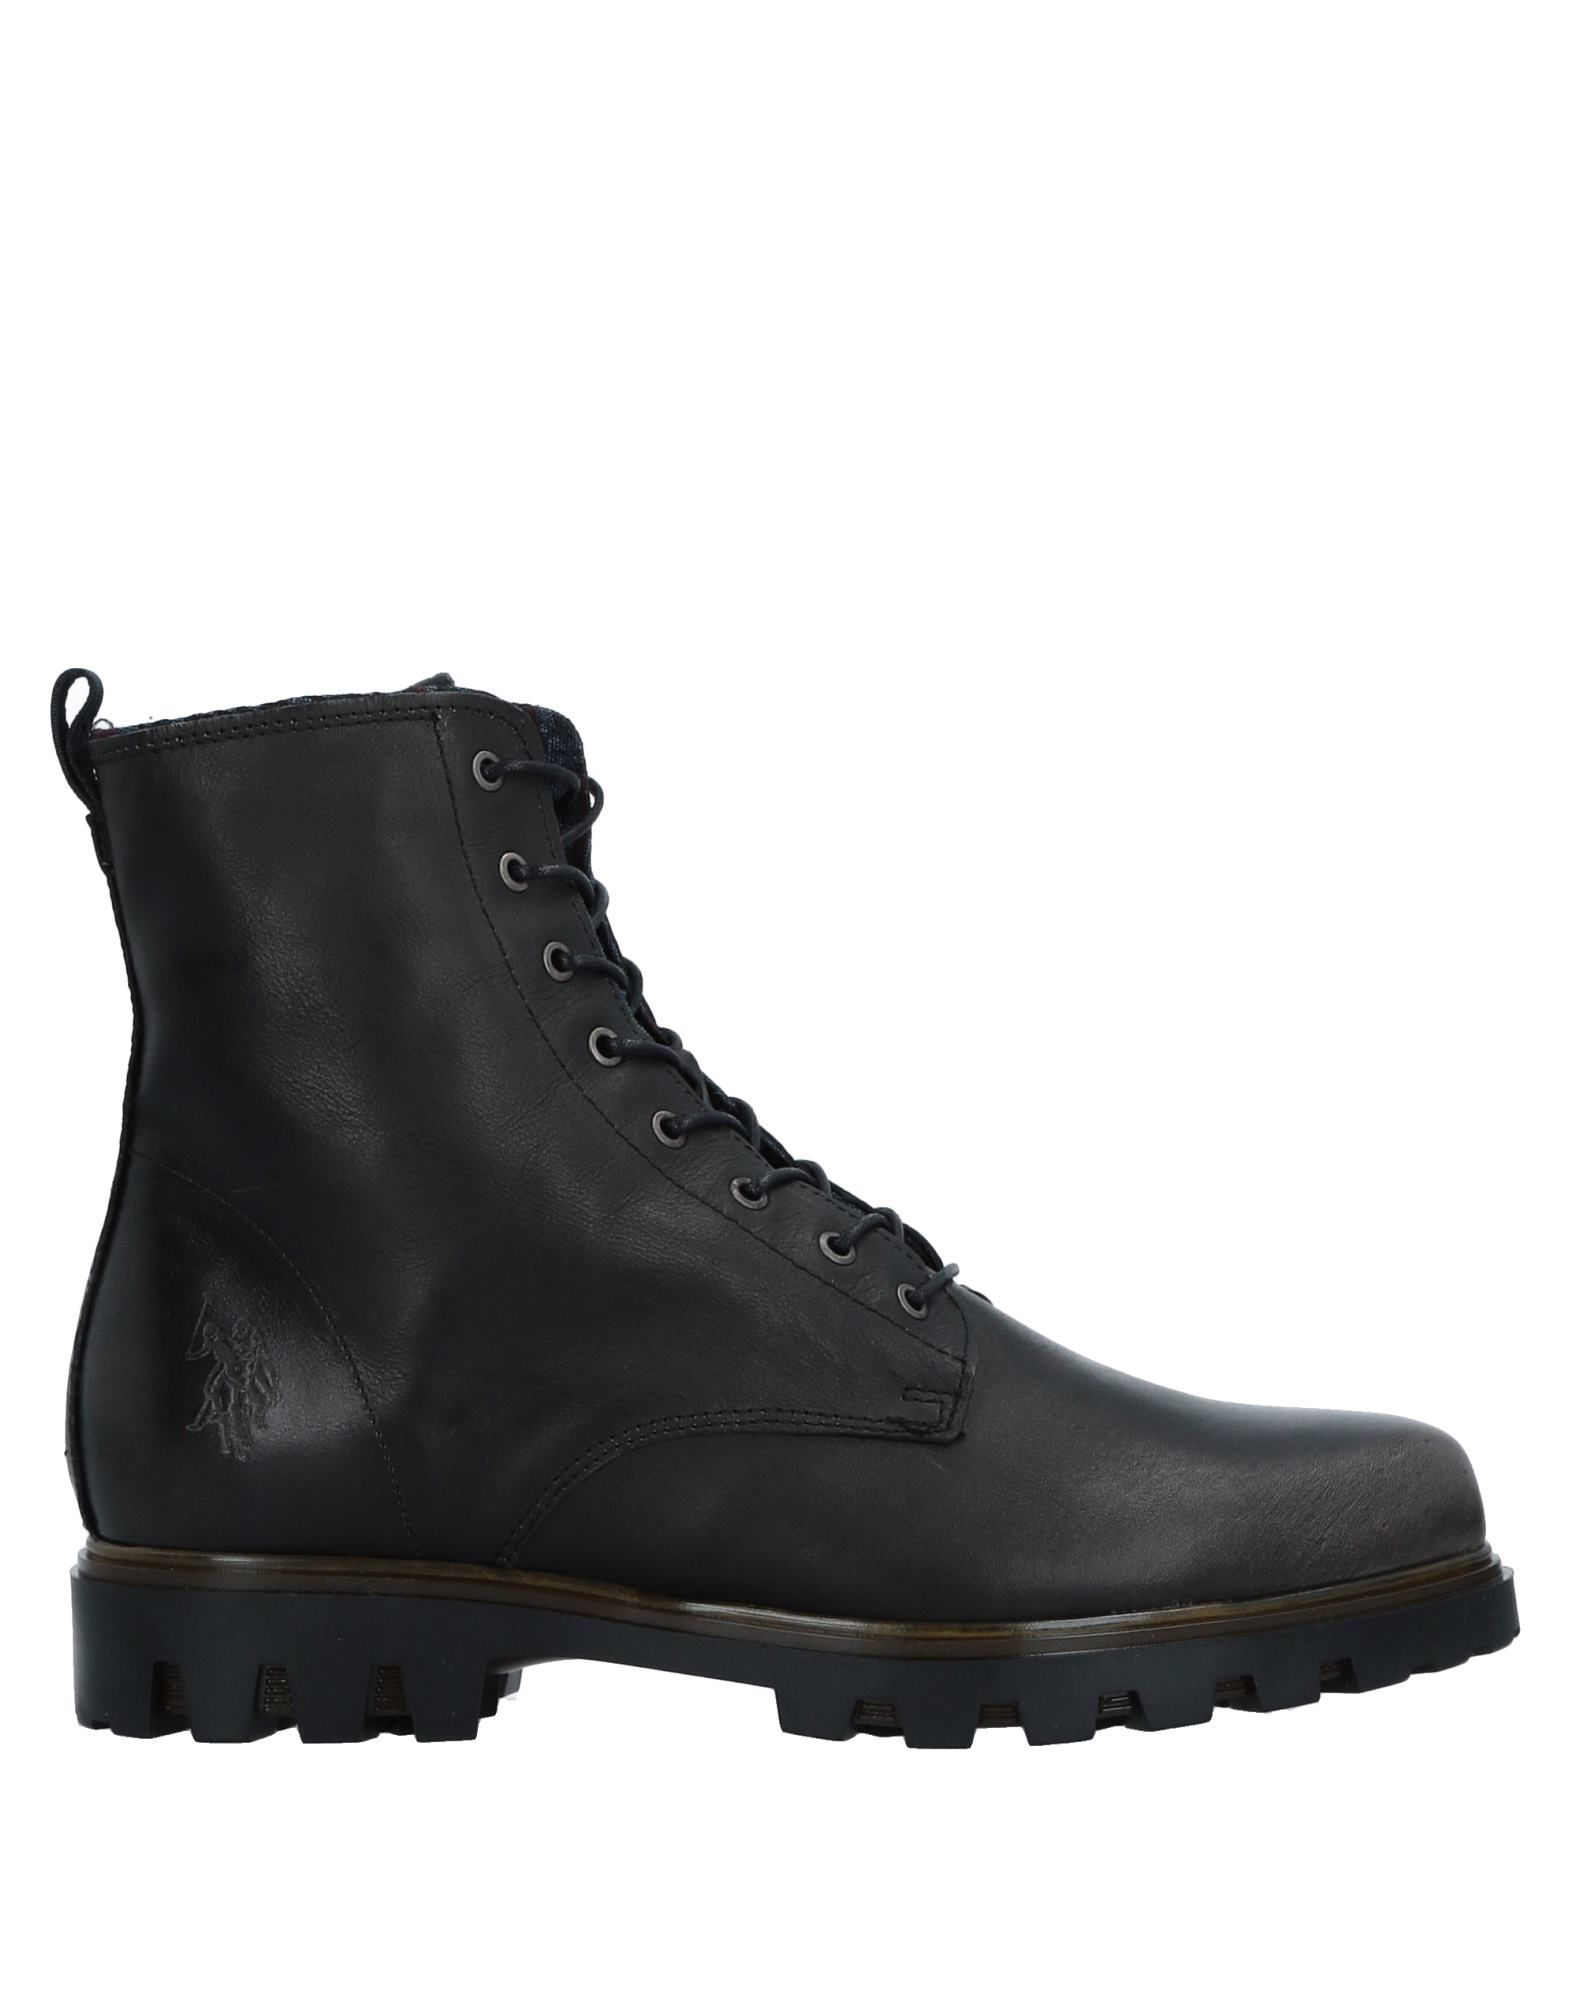 U.S.Polo Assn. Ankle Assn. Boot - Women U.S.Polo Assn. Ankle Ankle Boots online on  United Kingdom - 11516256LF f4479b